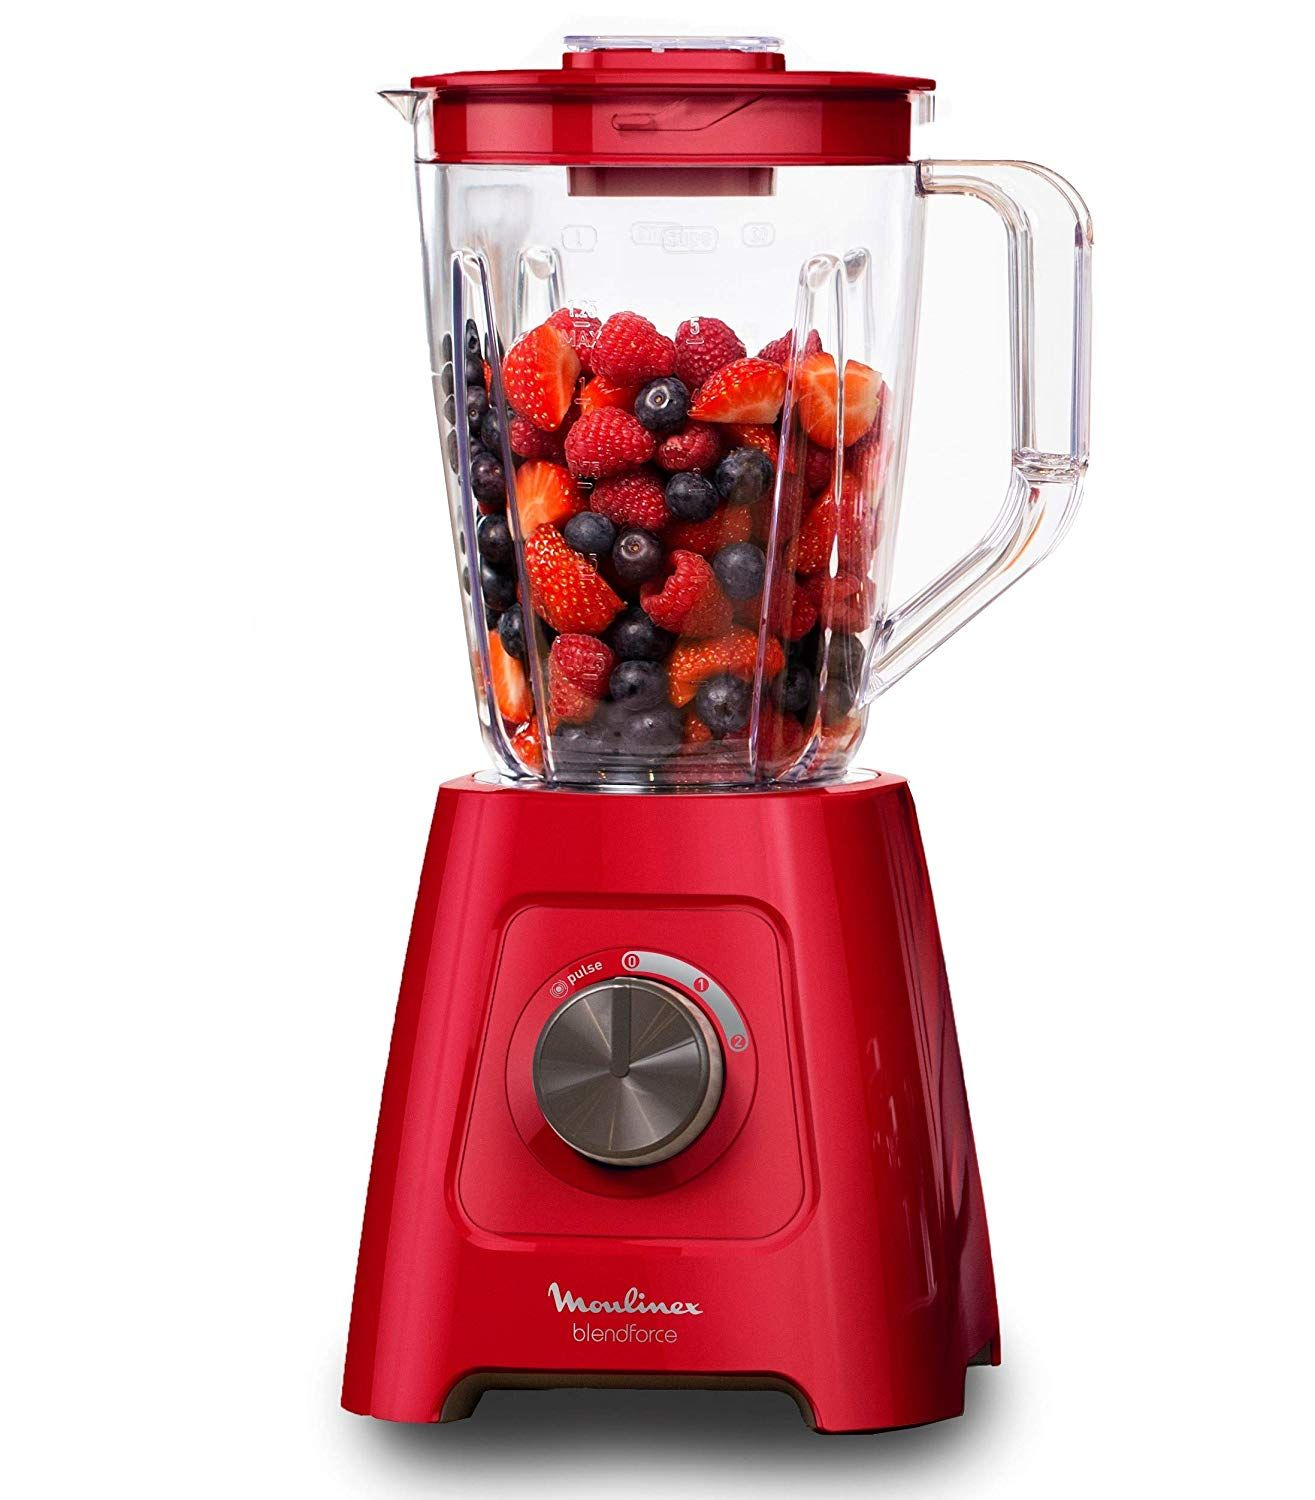 Moulinex Lm420510 Blender Mixeur Electrique Blendforce Capacite 2l Smoothie Soupe Fruits Legumes Glace Pilee 600w Rouge Amazon Fr Moulinex Glace Pilee Mixeur